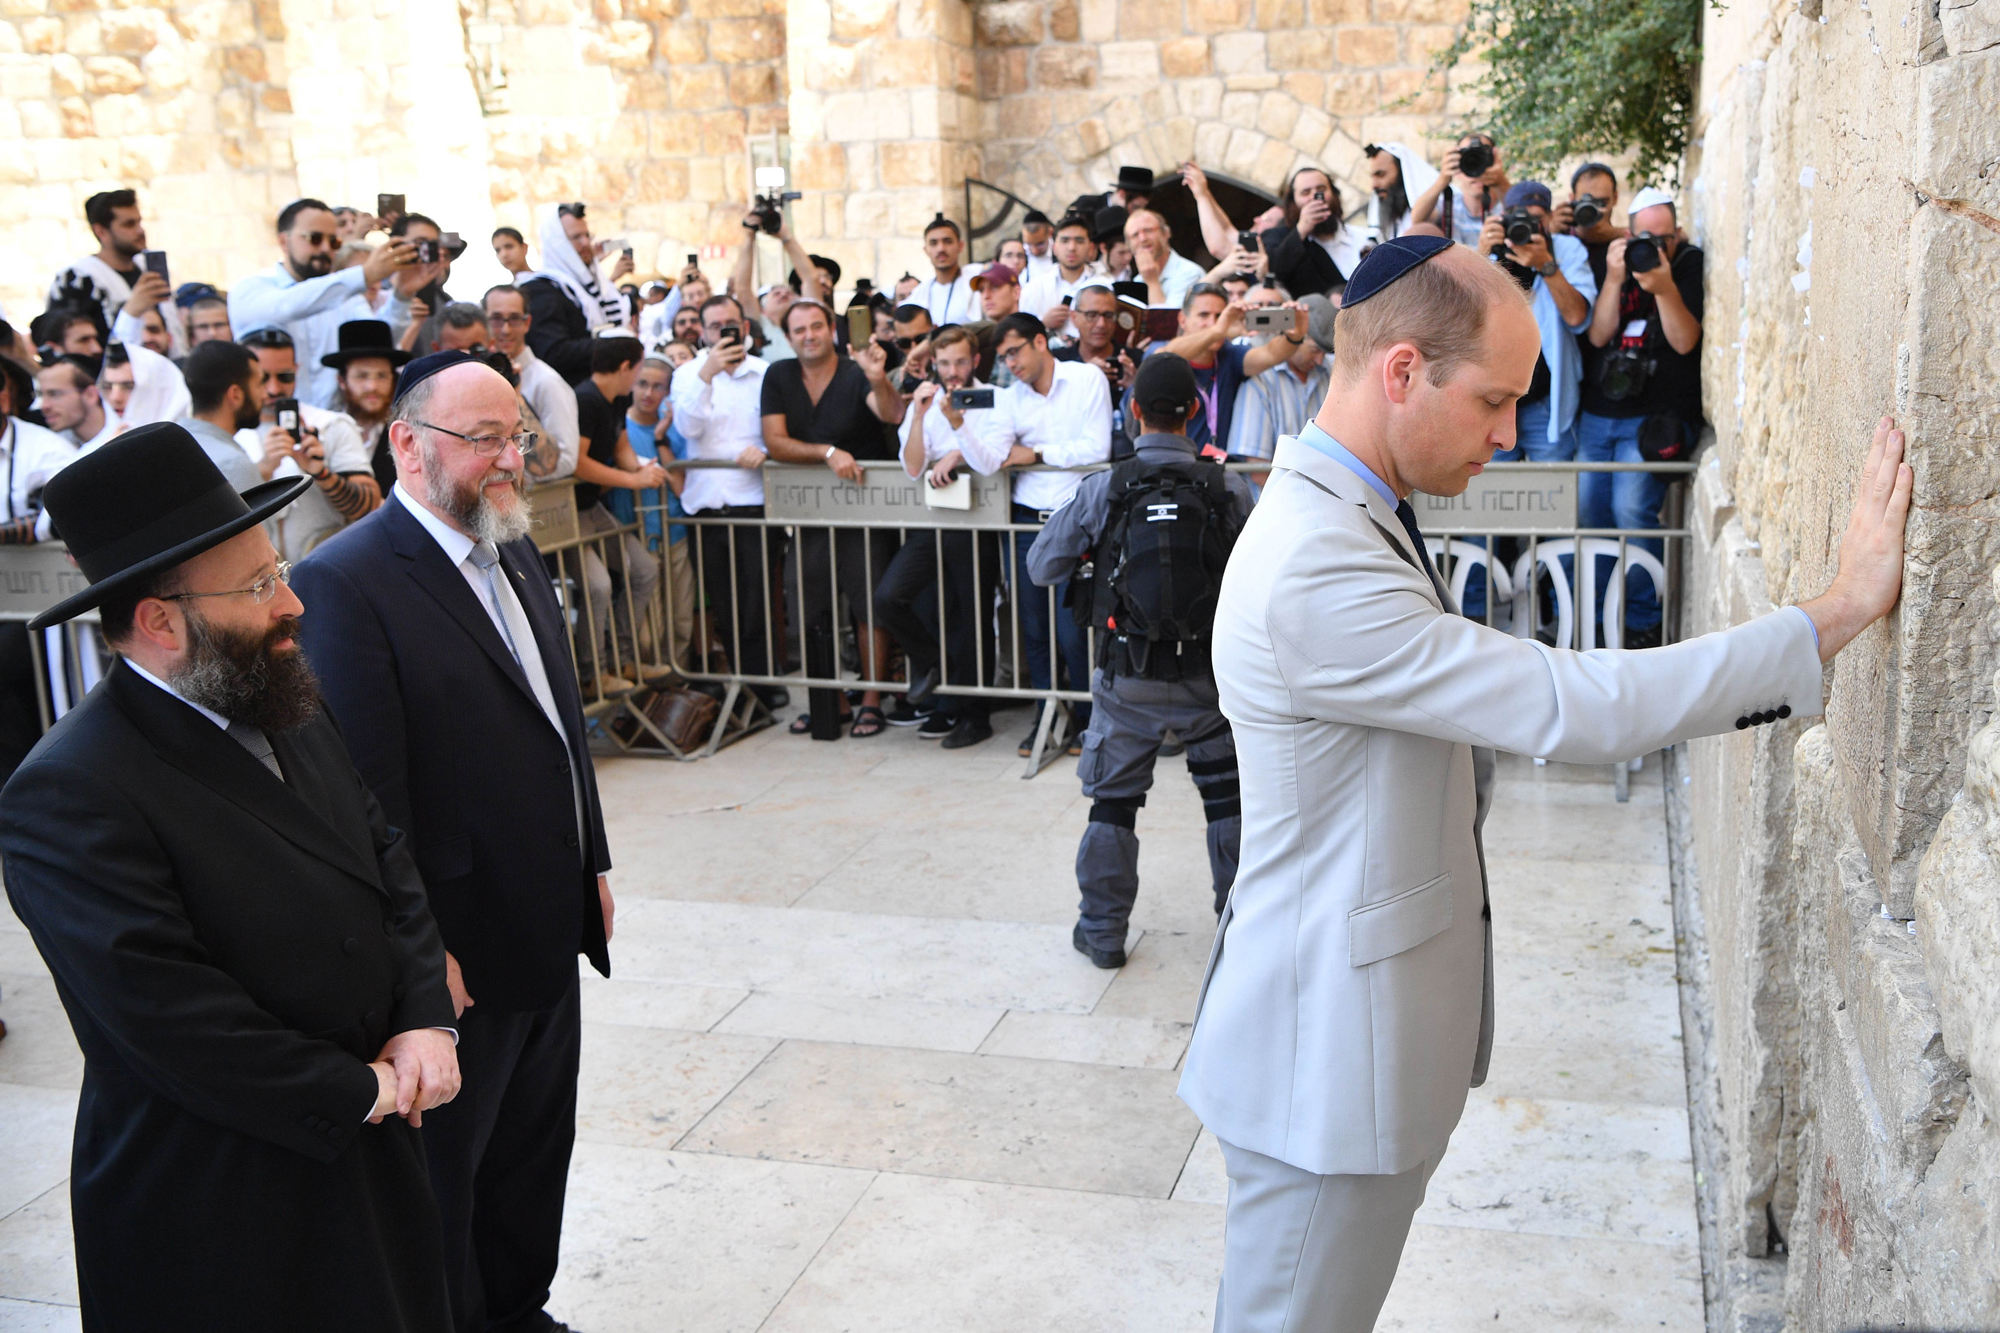 Prince William Middle East Tour, Palestinian Territories - 28 Jun 2018